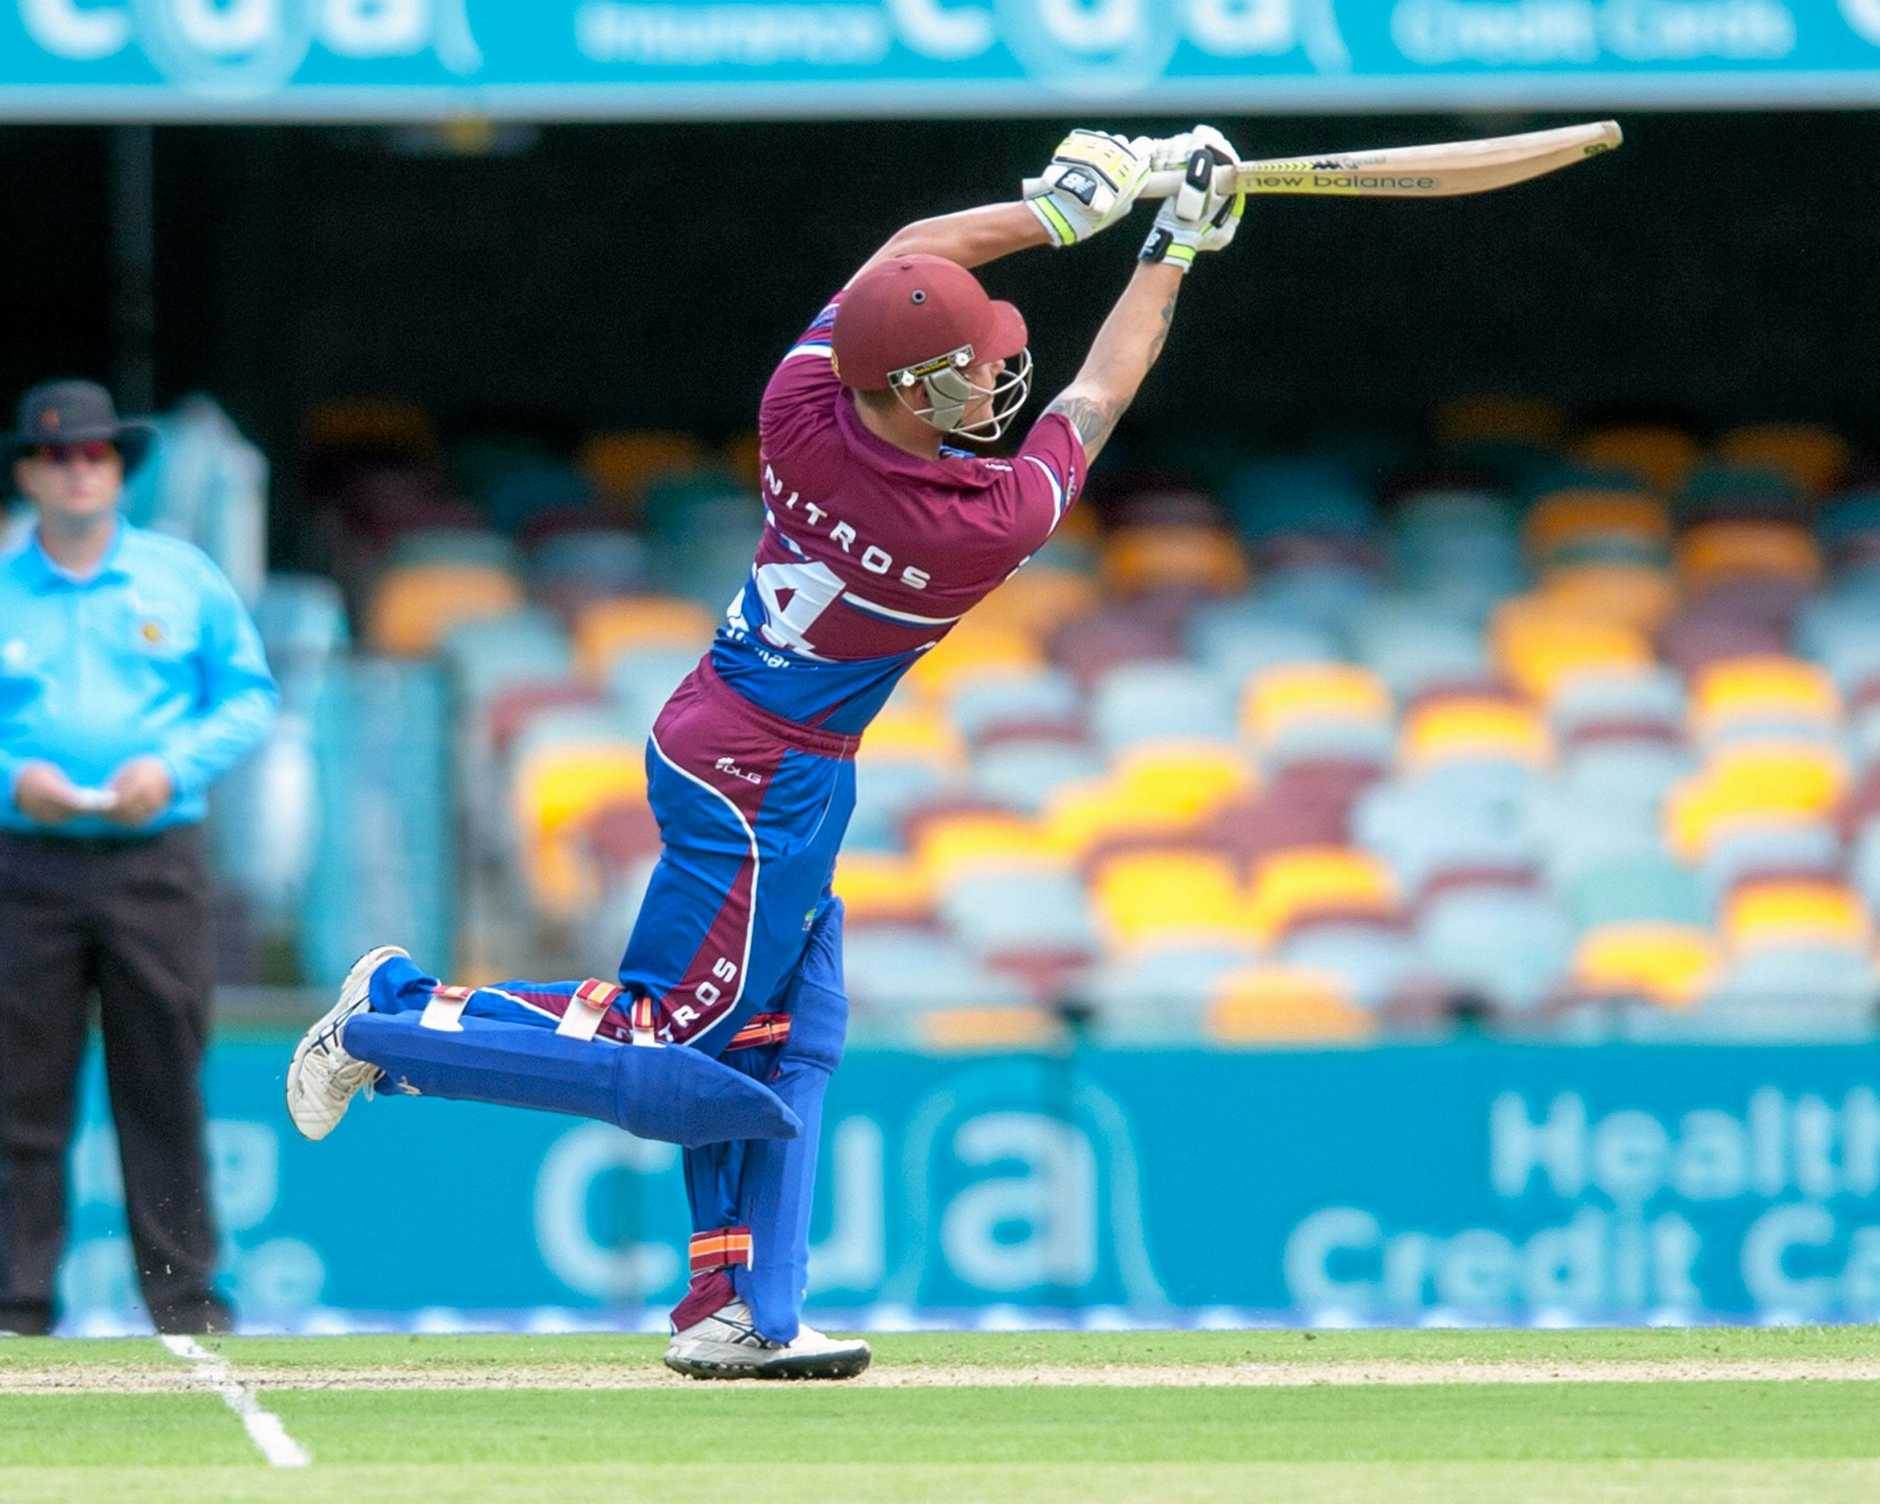 Mackay's Mitchell English playing in the Bulls Masters Country Challenge final at the Gabba on Wednesday, December 27, 2017. ***Must use Bob Jones' byline if using pic***